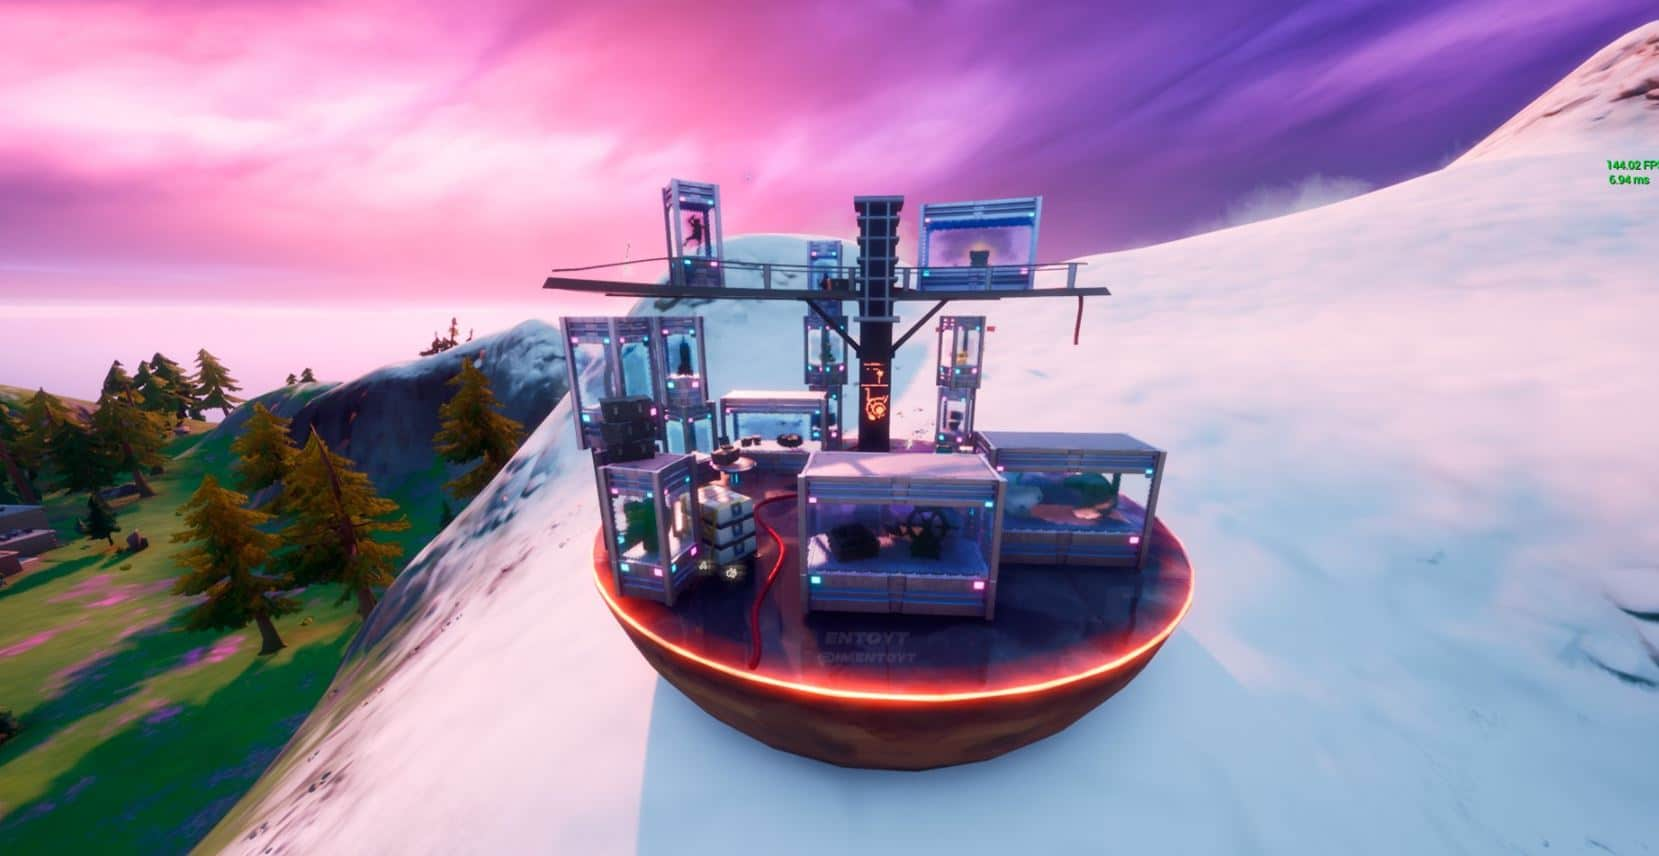 Fortnite Season 4 adds the Collector's Museum to the island